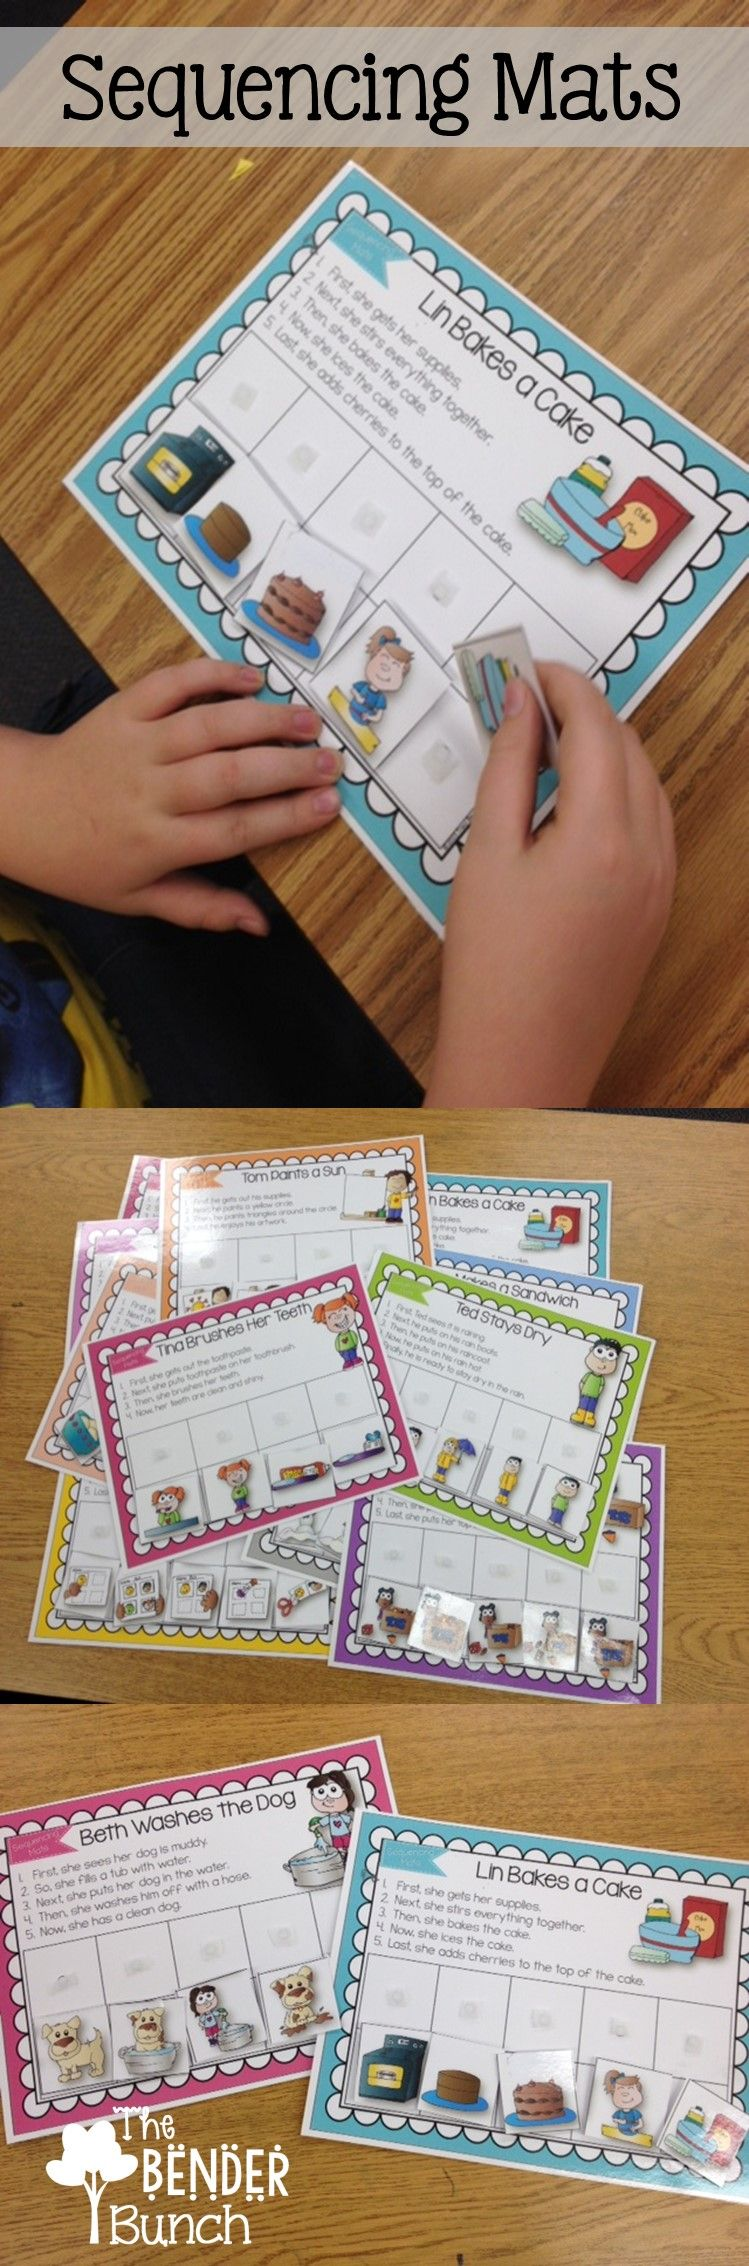 Sequencing Mats for Teaching Sequencing Skills | Language, Speech ...